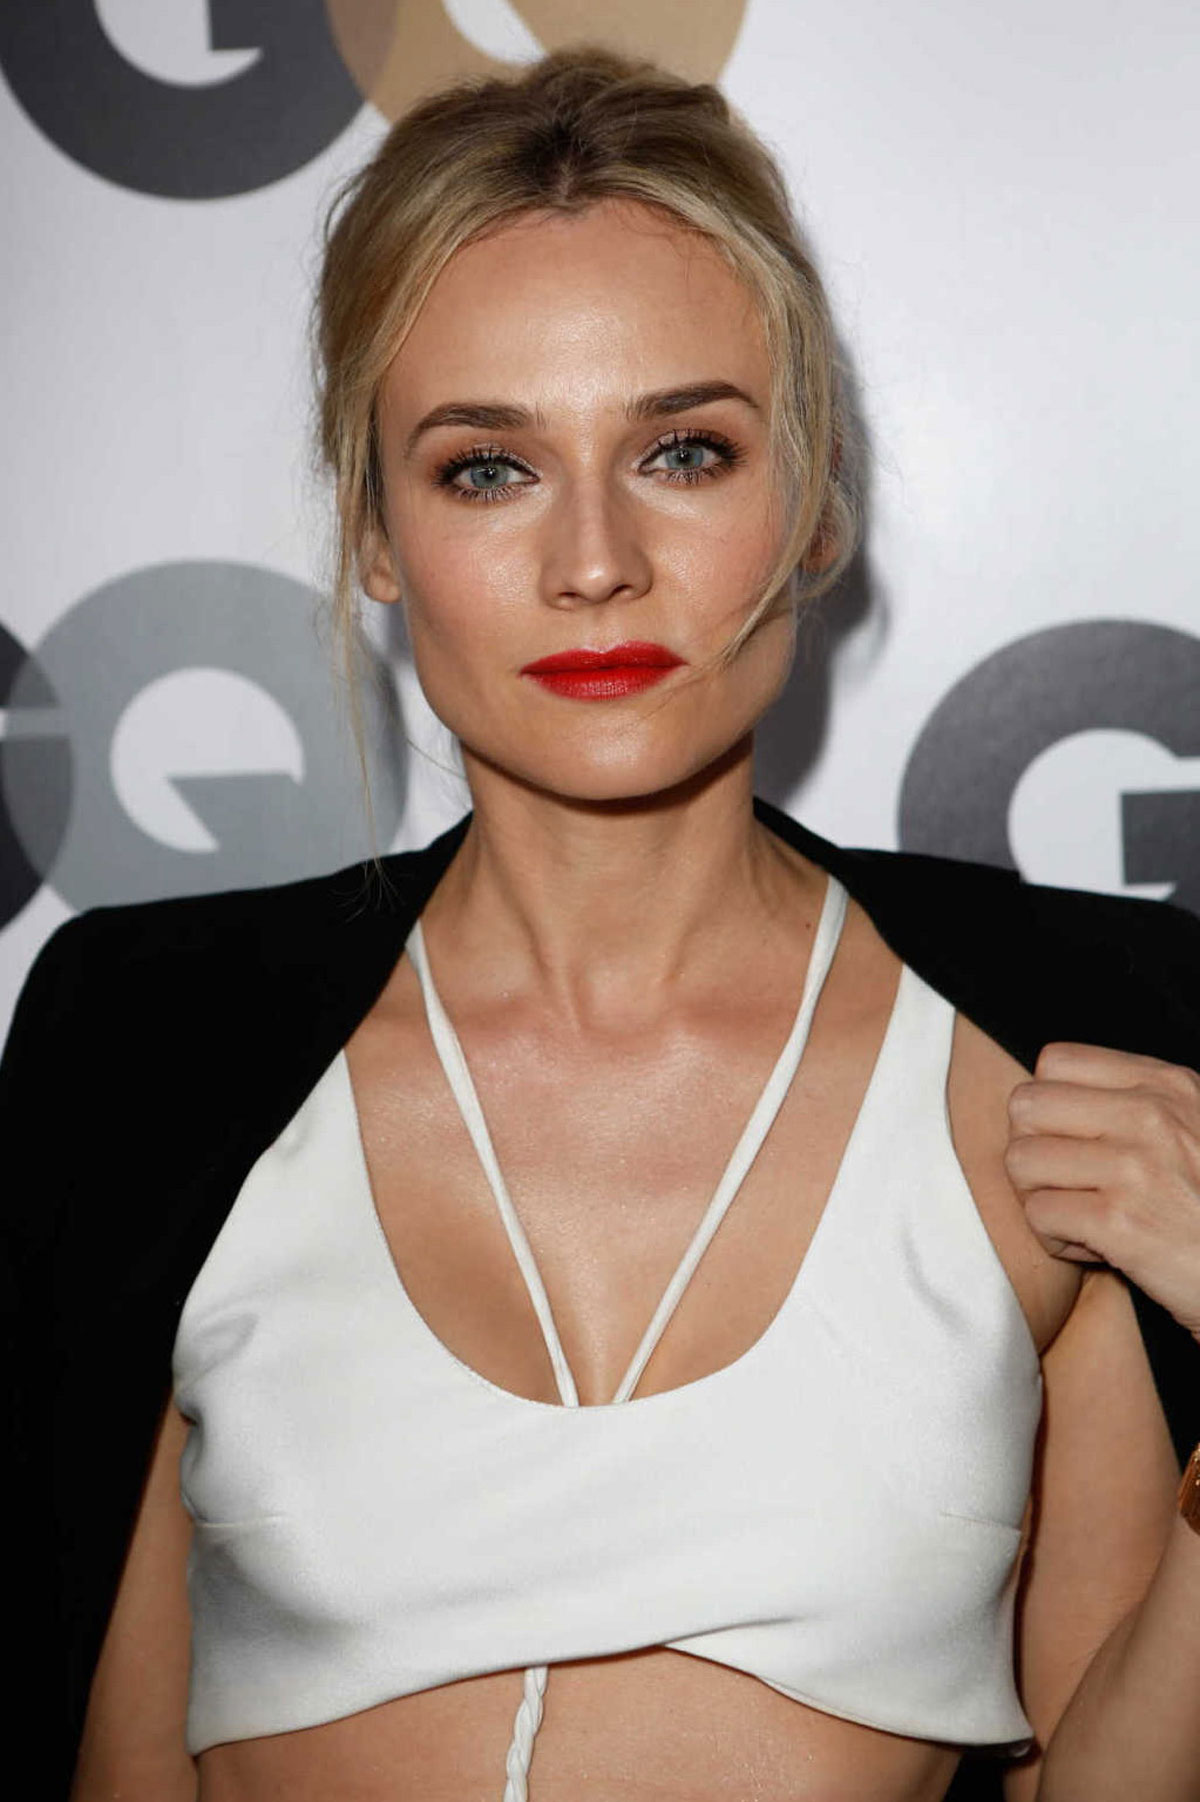 a21ee5889 DIANE KRUGER at GQ Men of The Year Party - HawtCelebs